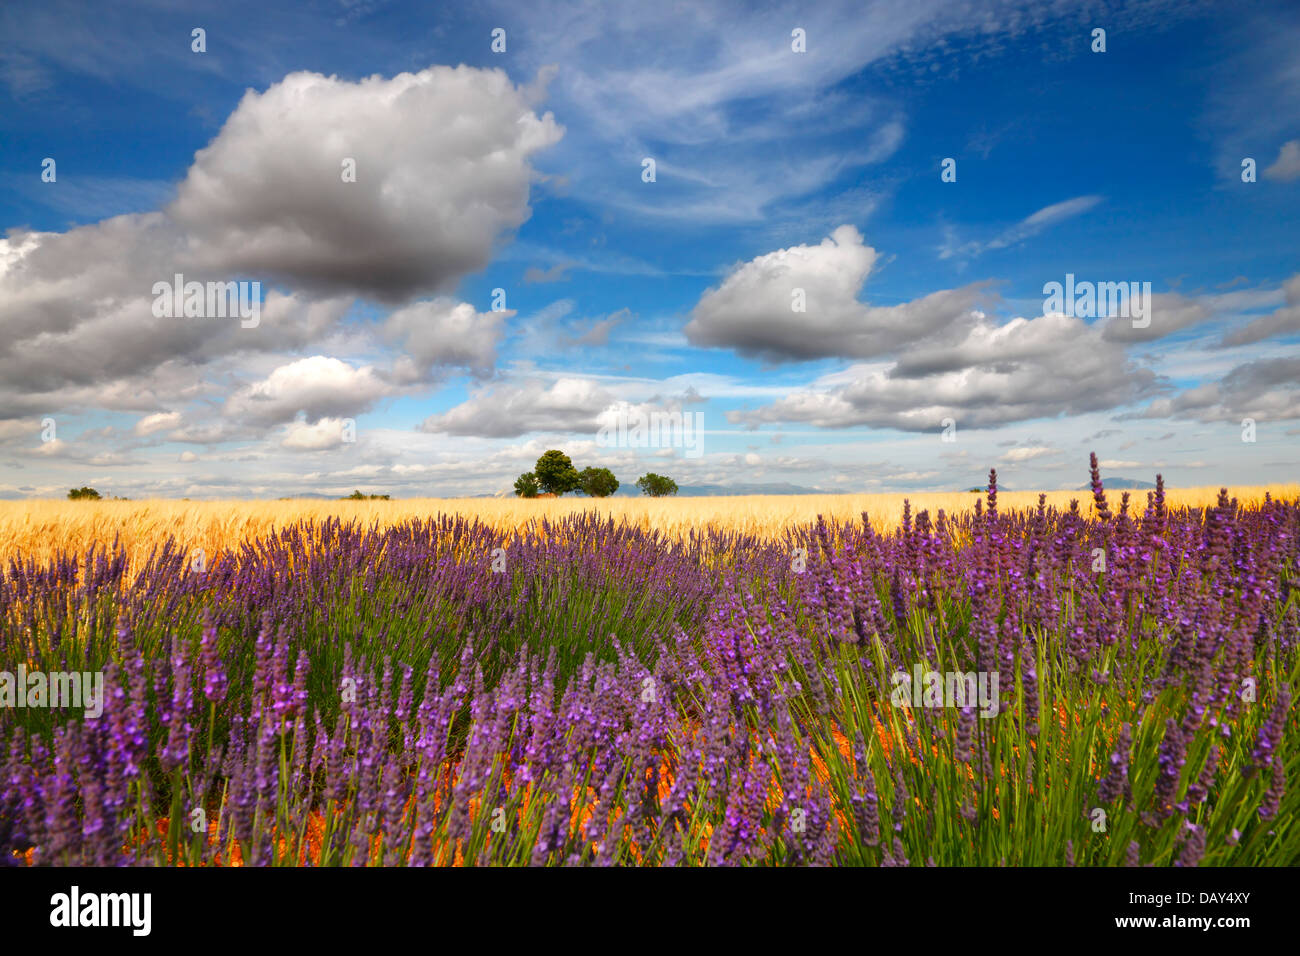 Lavender field with beautiful clouds, Provence France. - Stock Image